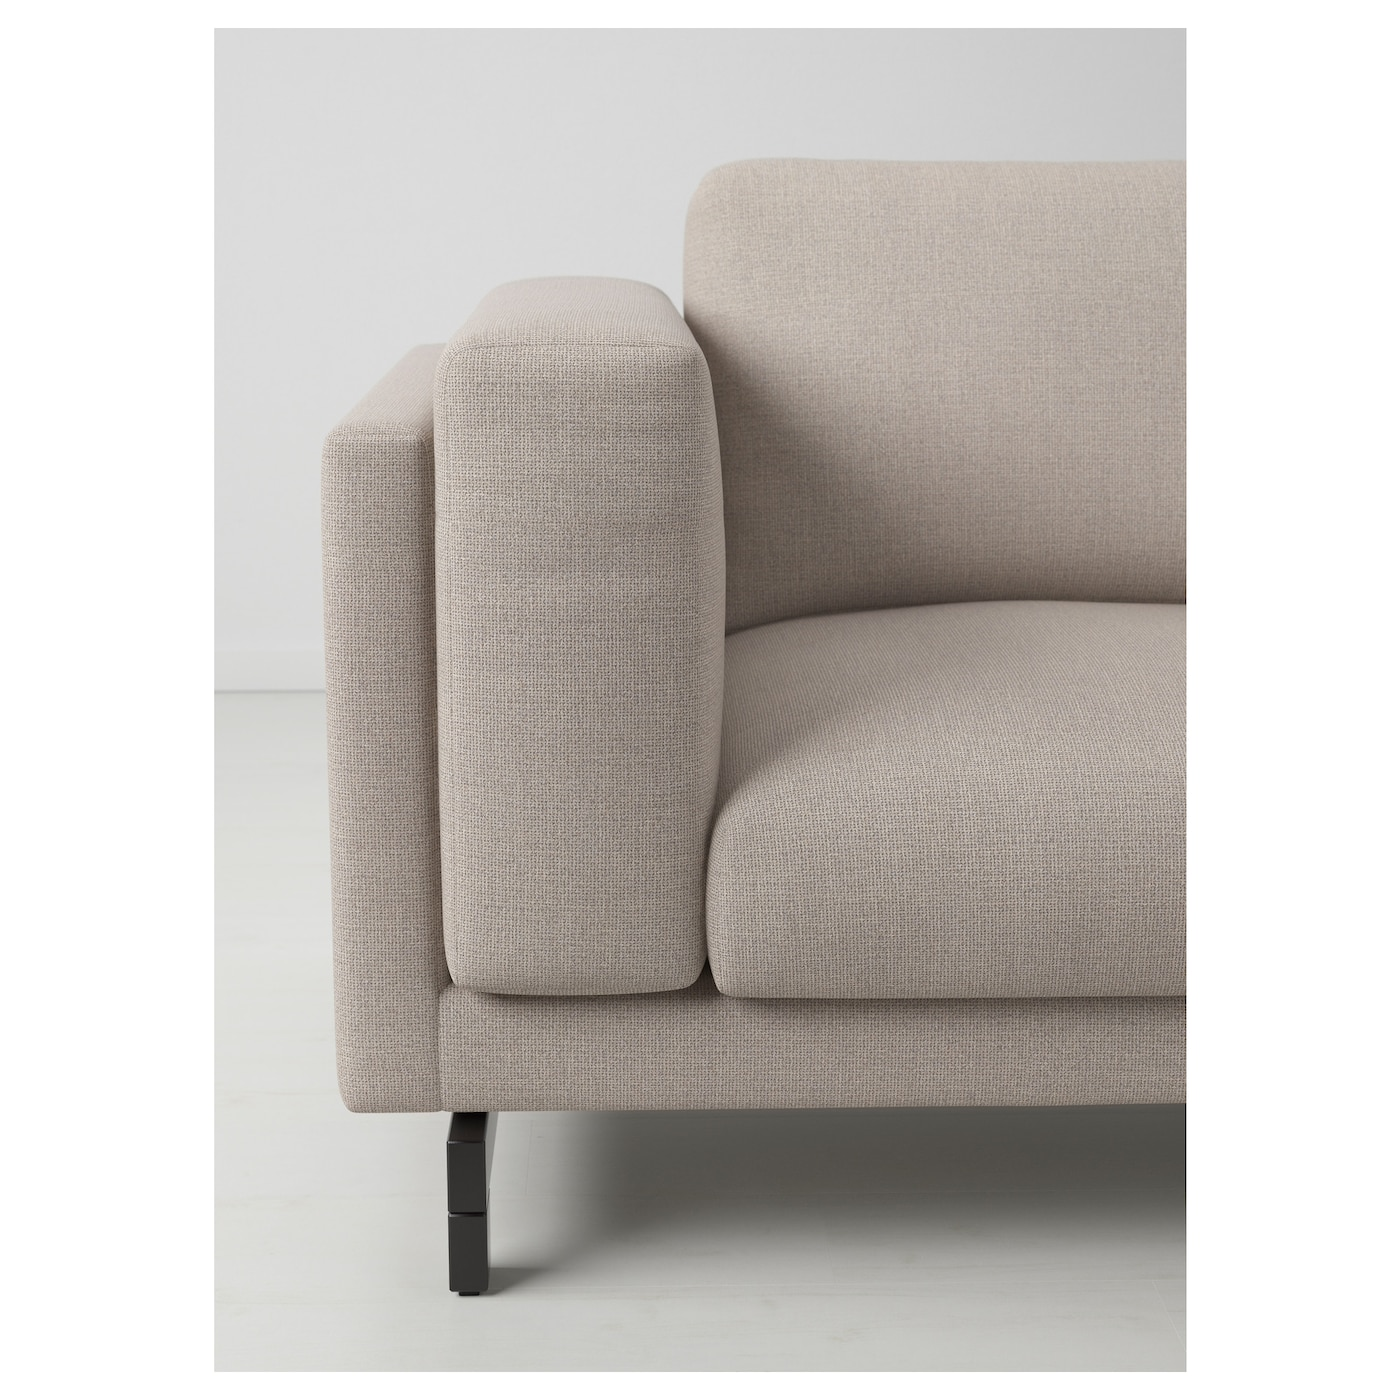 IKEA NOCKEBY legs for 3-seat sofa